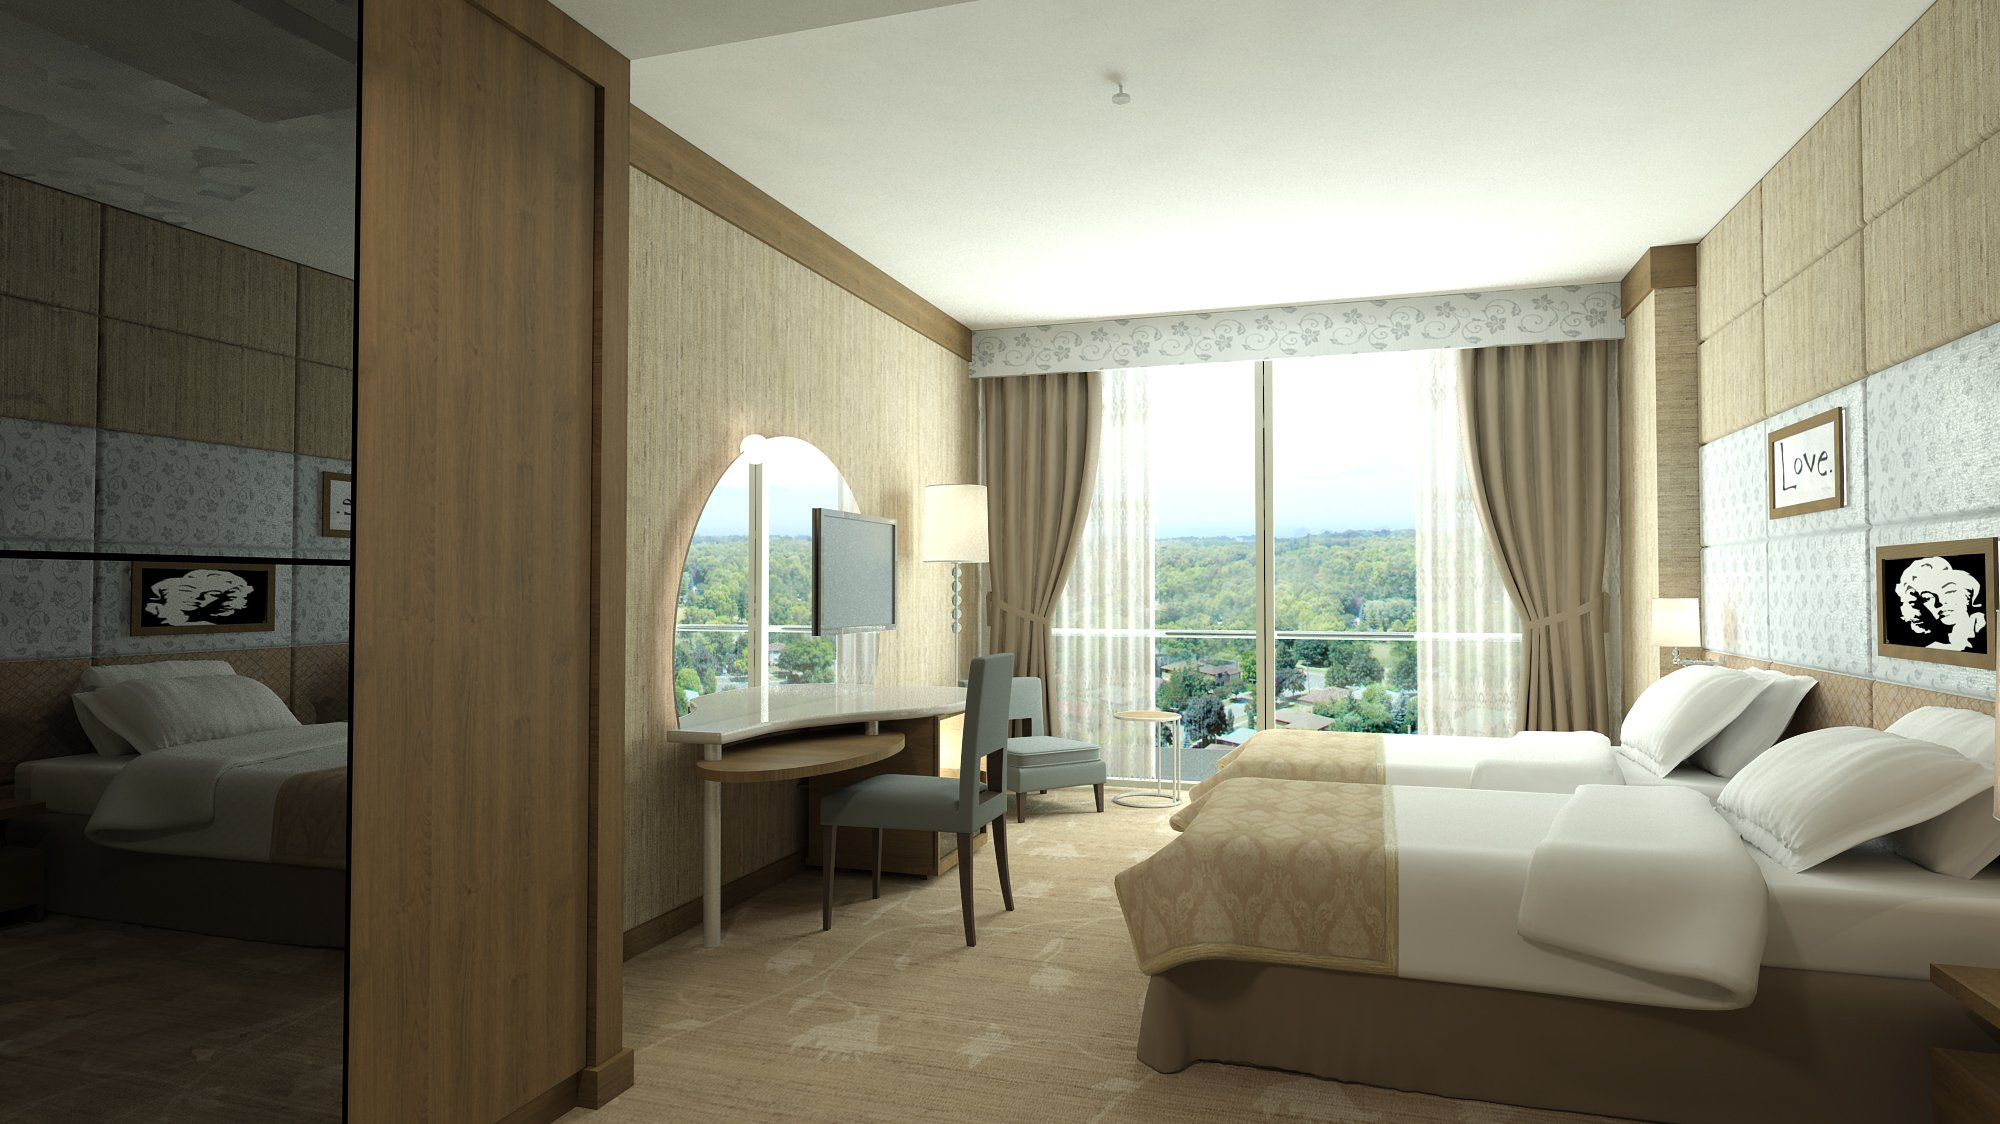 Silence Istanbul Hotel & Convention Center (Gold/Silver/ROH) - Turkey - Istanbul